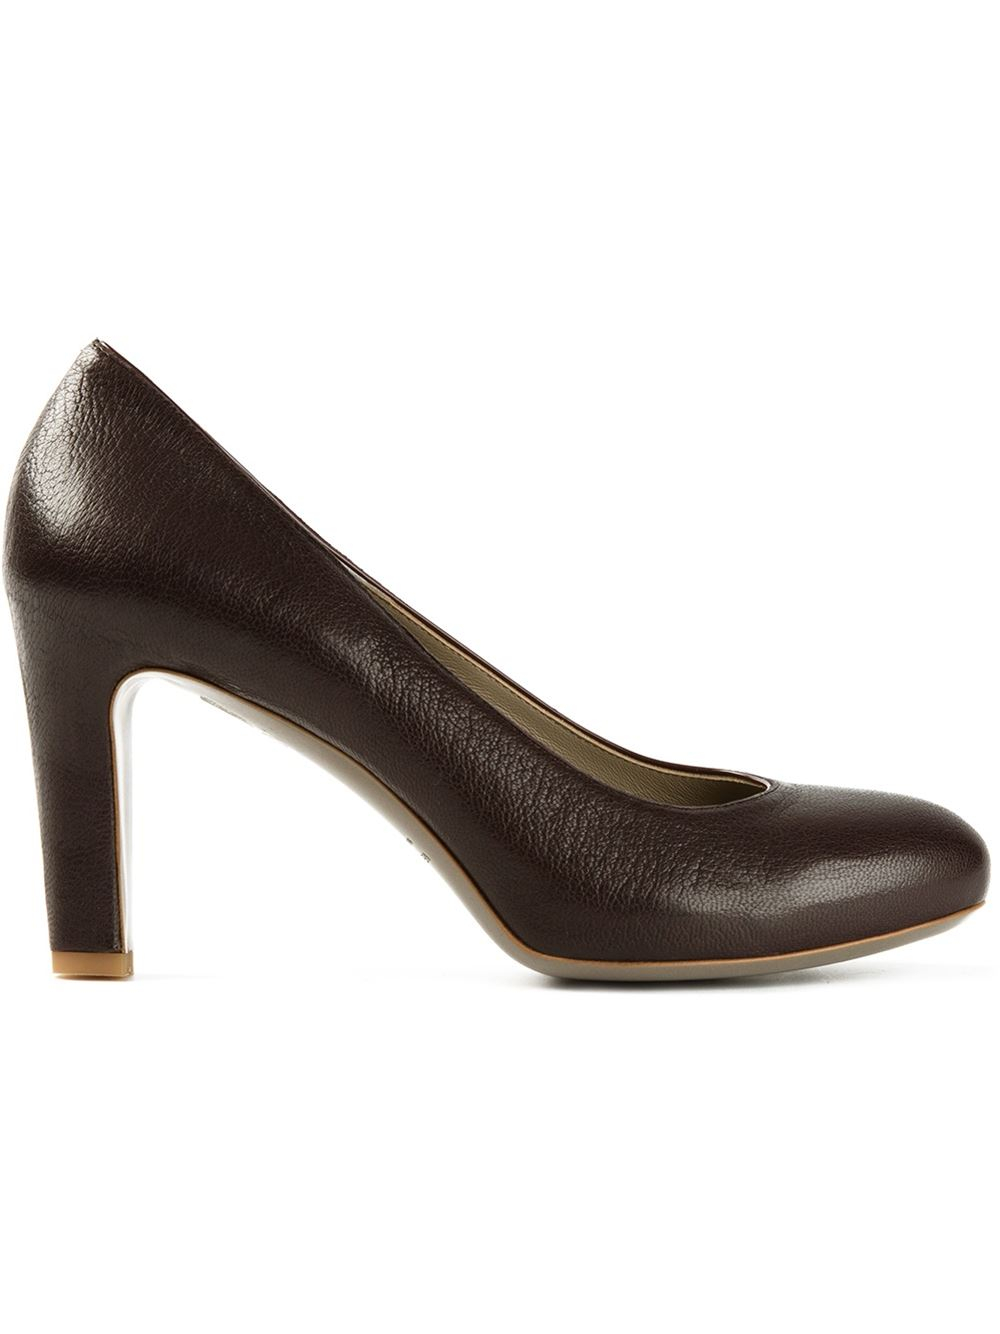 Brown Chunky Heel Shoes